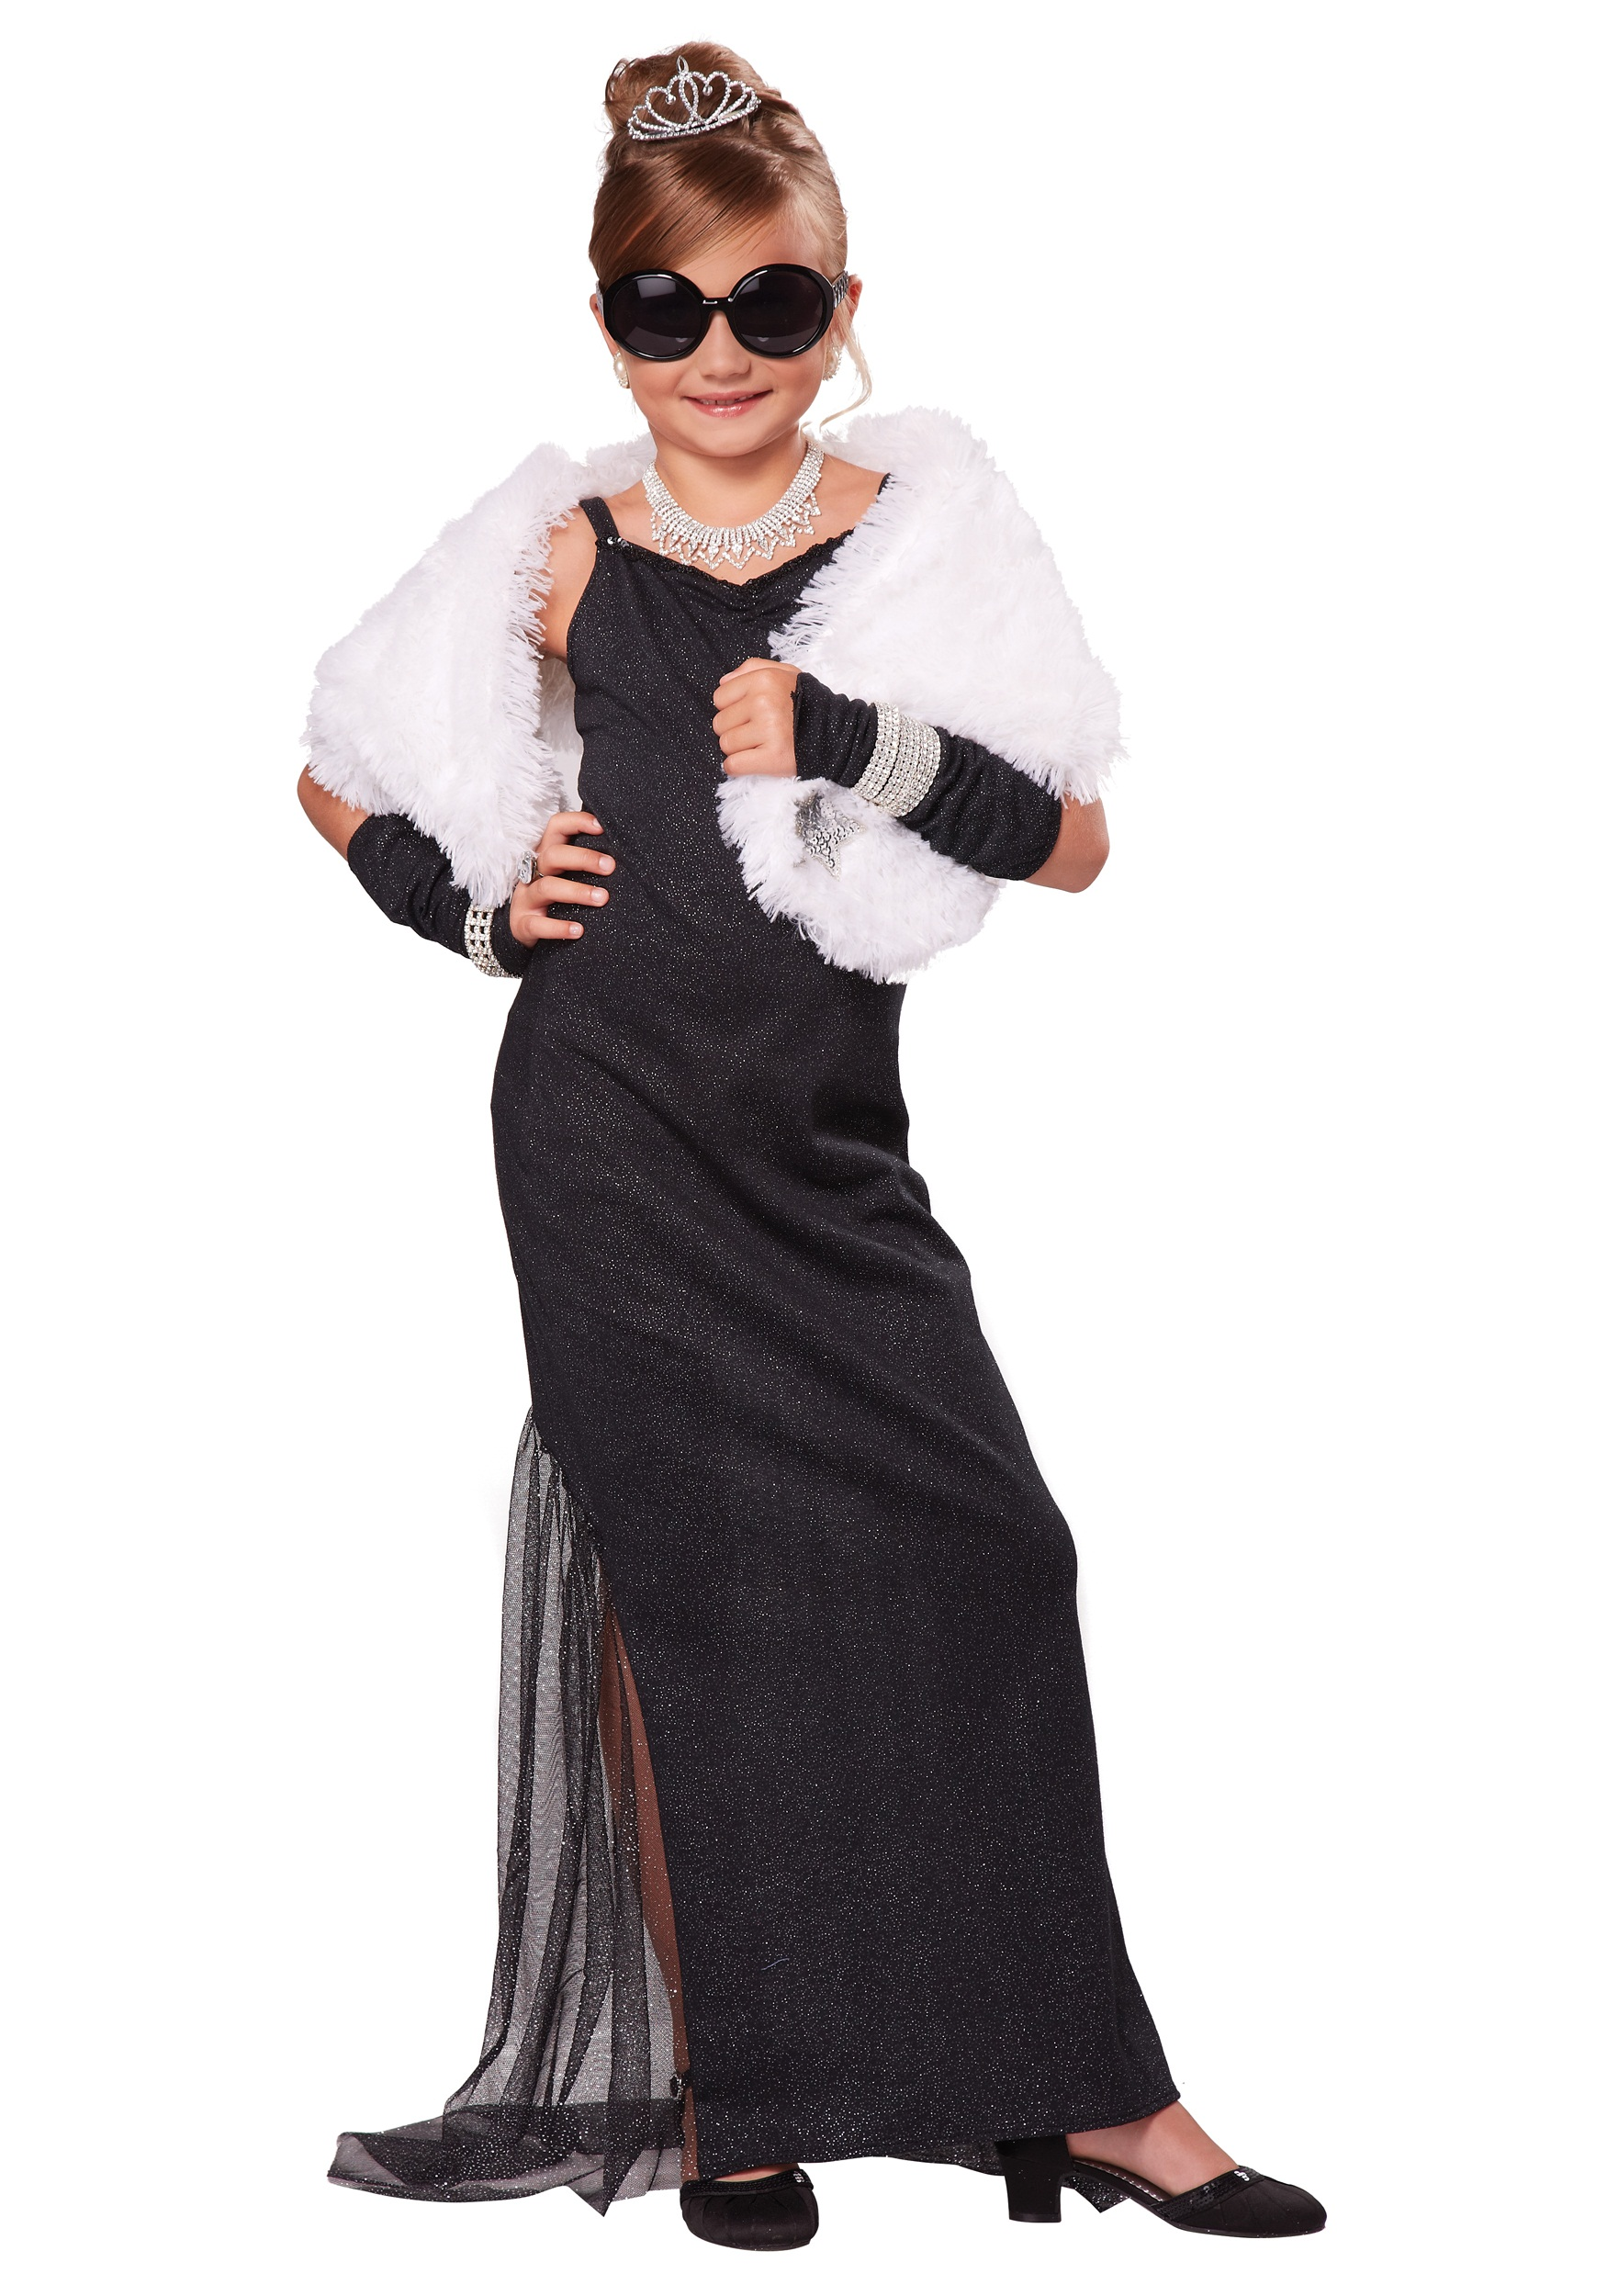 Hollywood Diva  sc 1 st  Halloween Costumes & Girlu0027s Hollywood Diva Costume